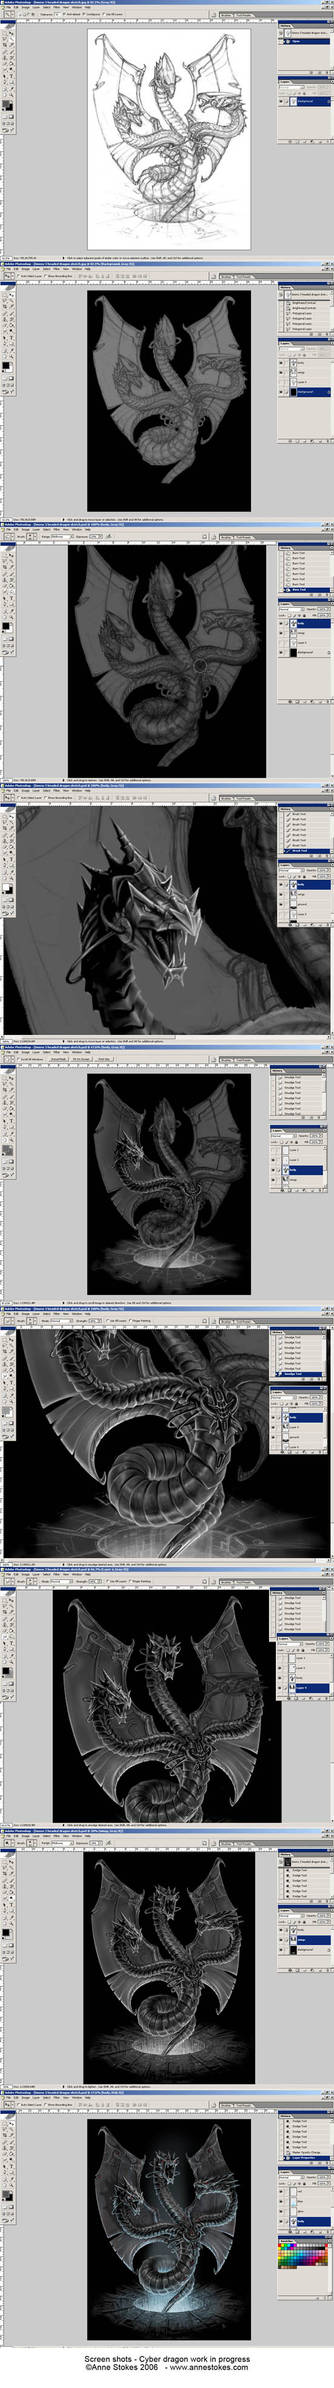 Cyber dragon work in progress